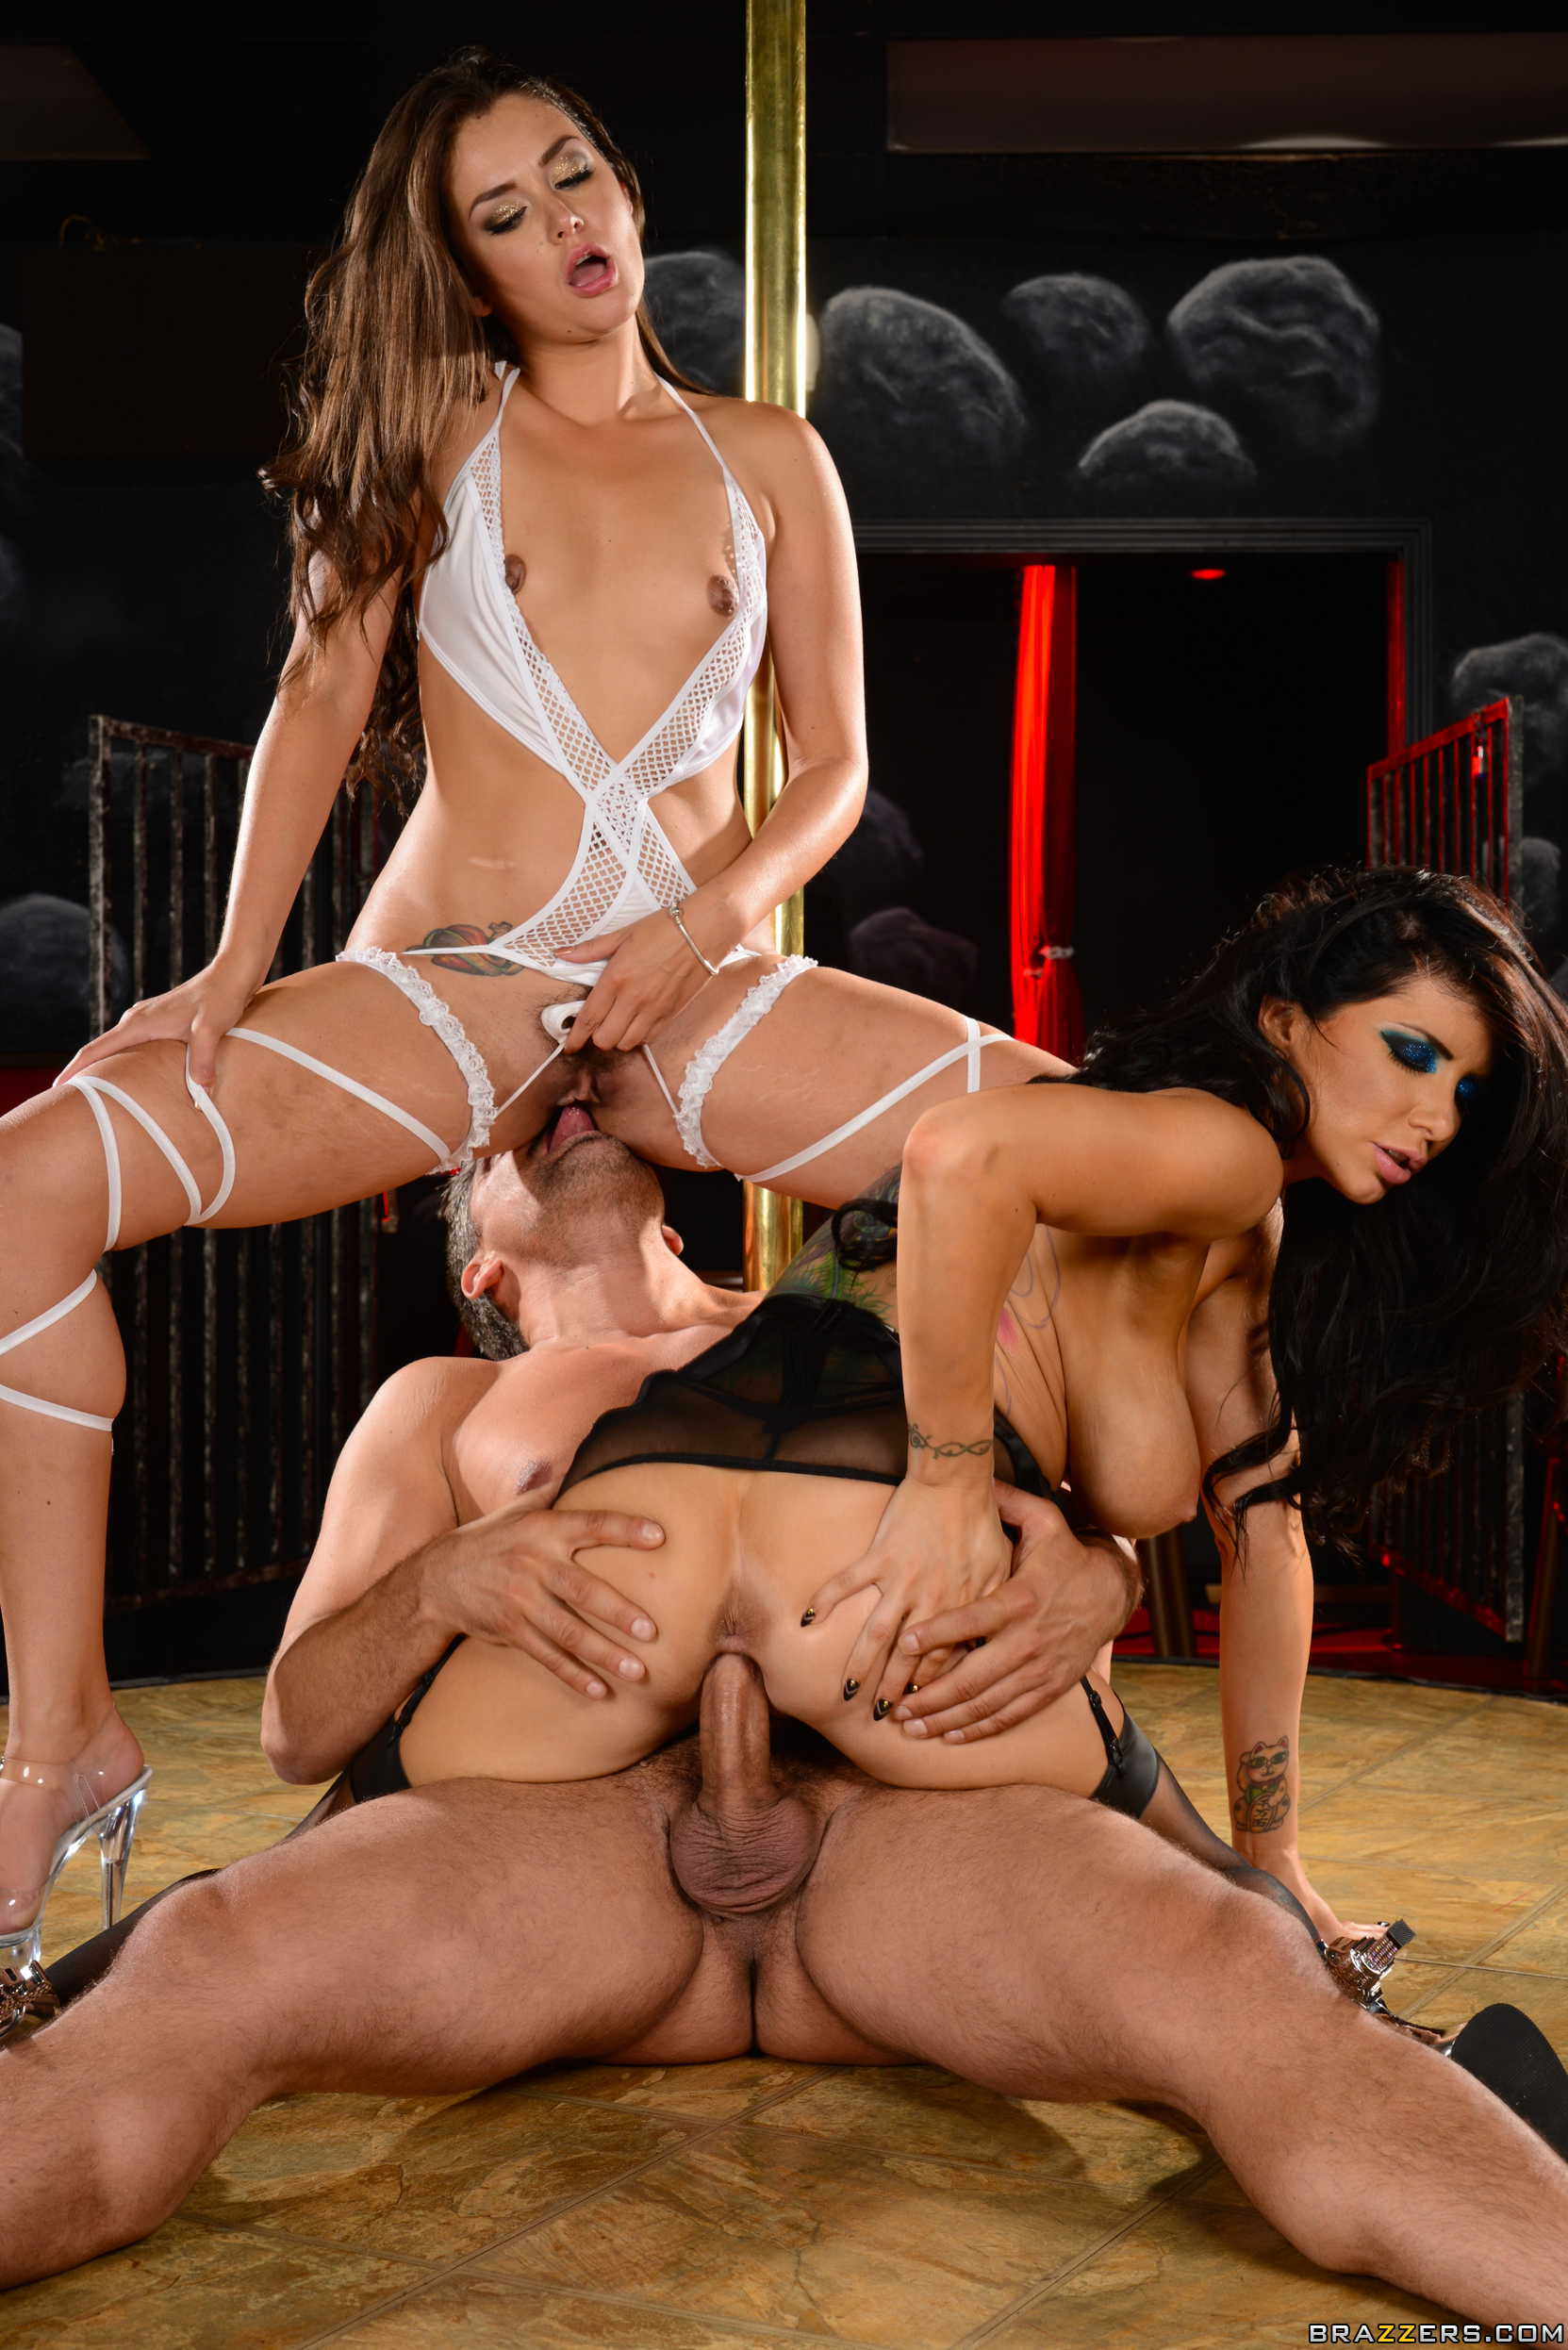 Allie haze romi rain and chanel preston test their oral skills on a cock 8